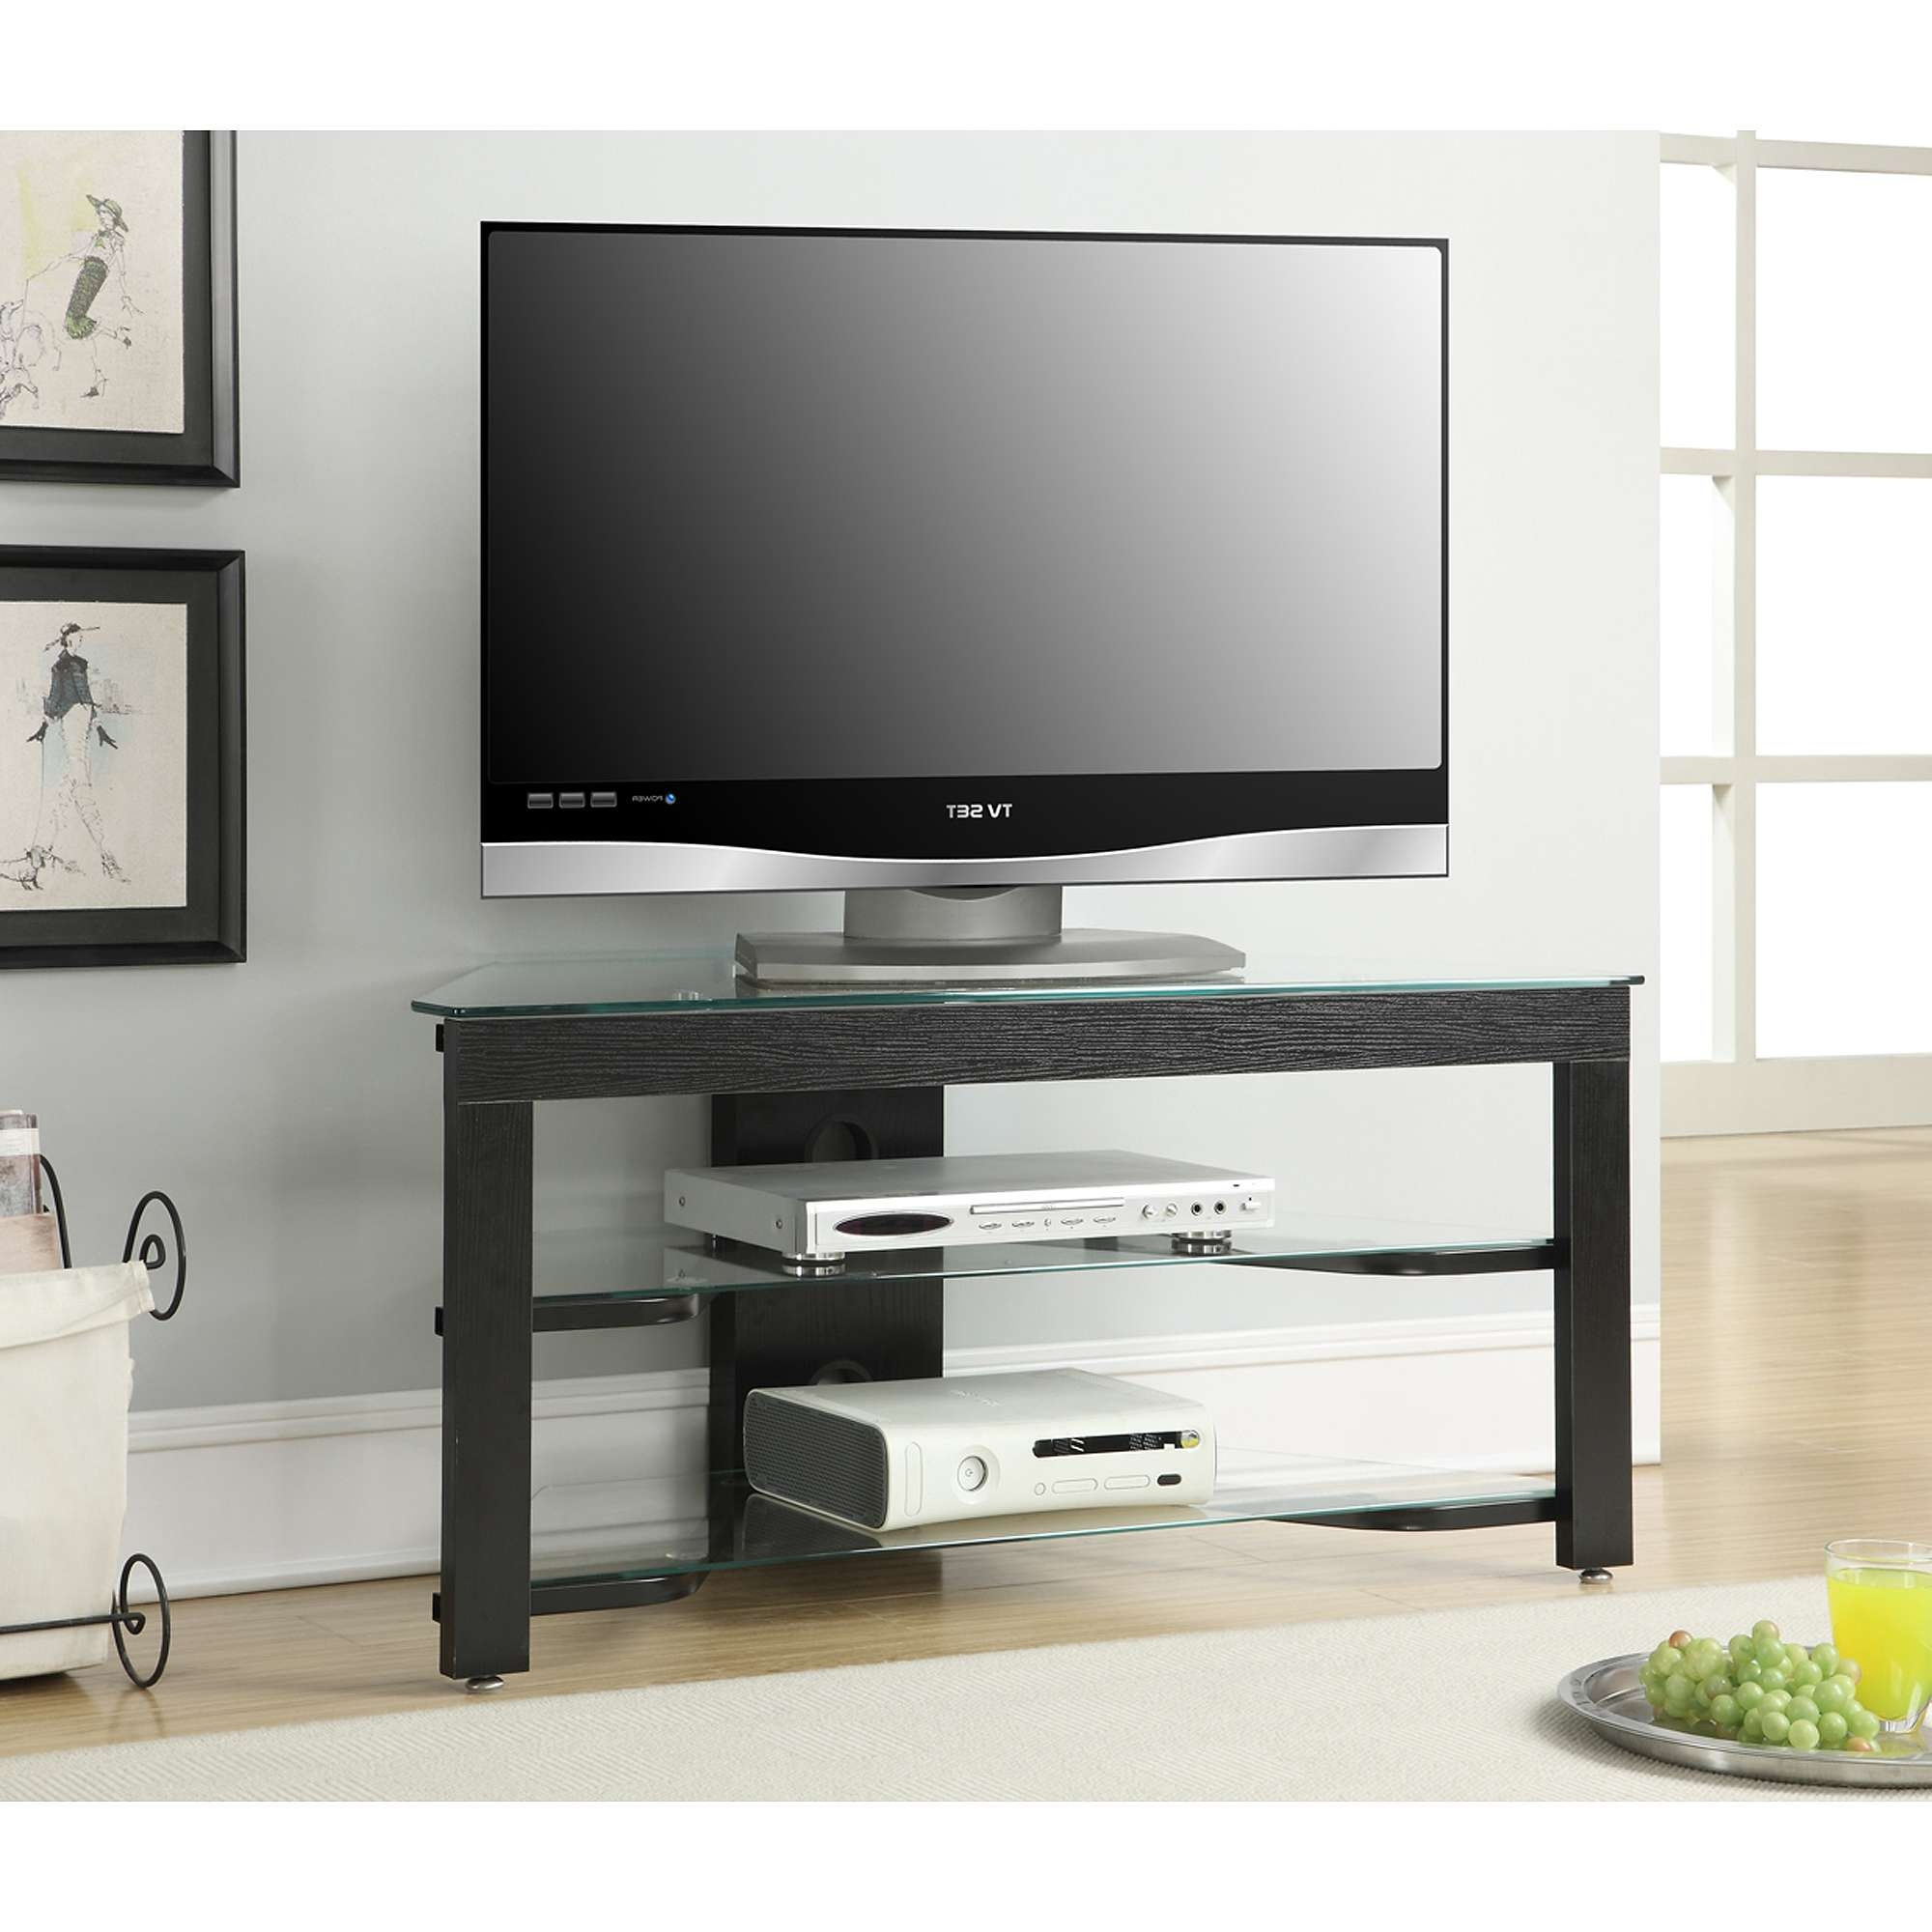 Convenience Concepts Designs2Go Wood And Glass Tv Stand For Tvs Up With Regard To Wood Tv Stands With Glass (View 7 of 15)